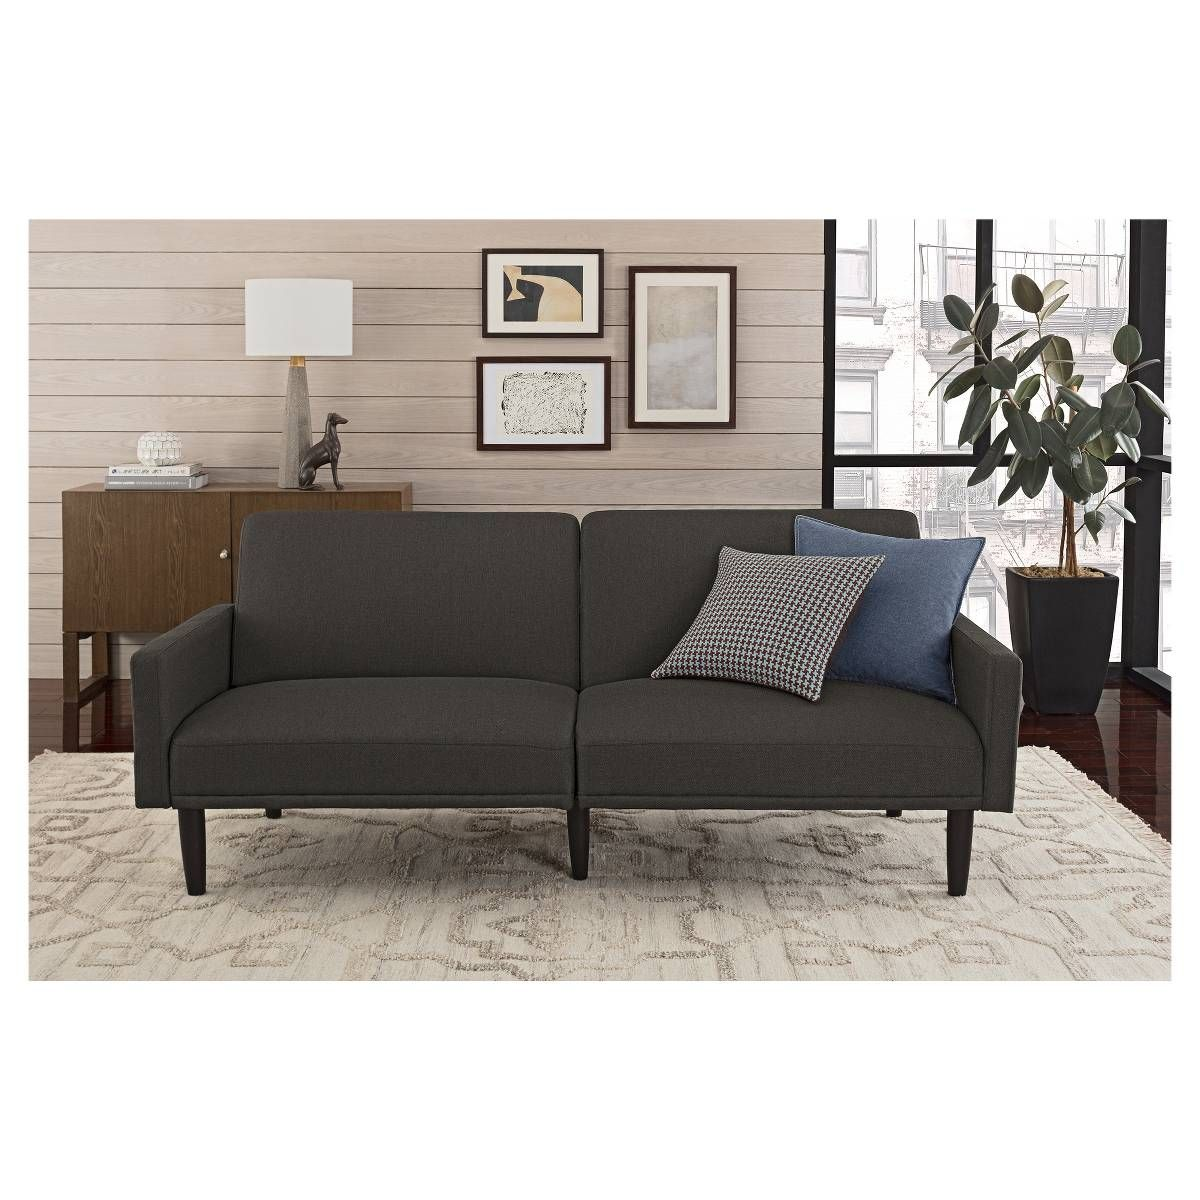 Linen Futon With Arms Gray Room Essentials Ideas Para